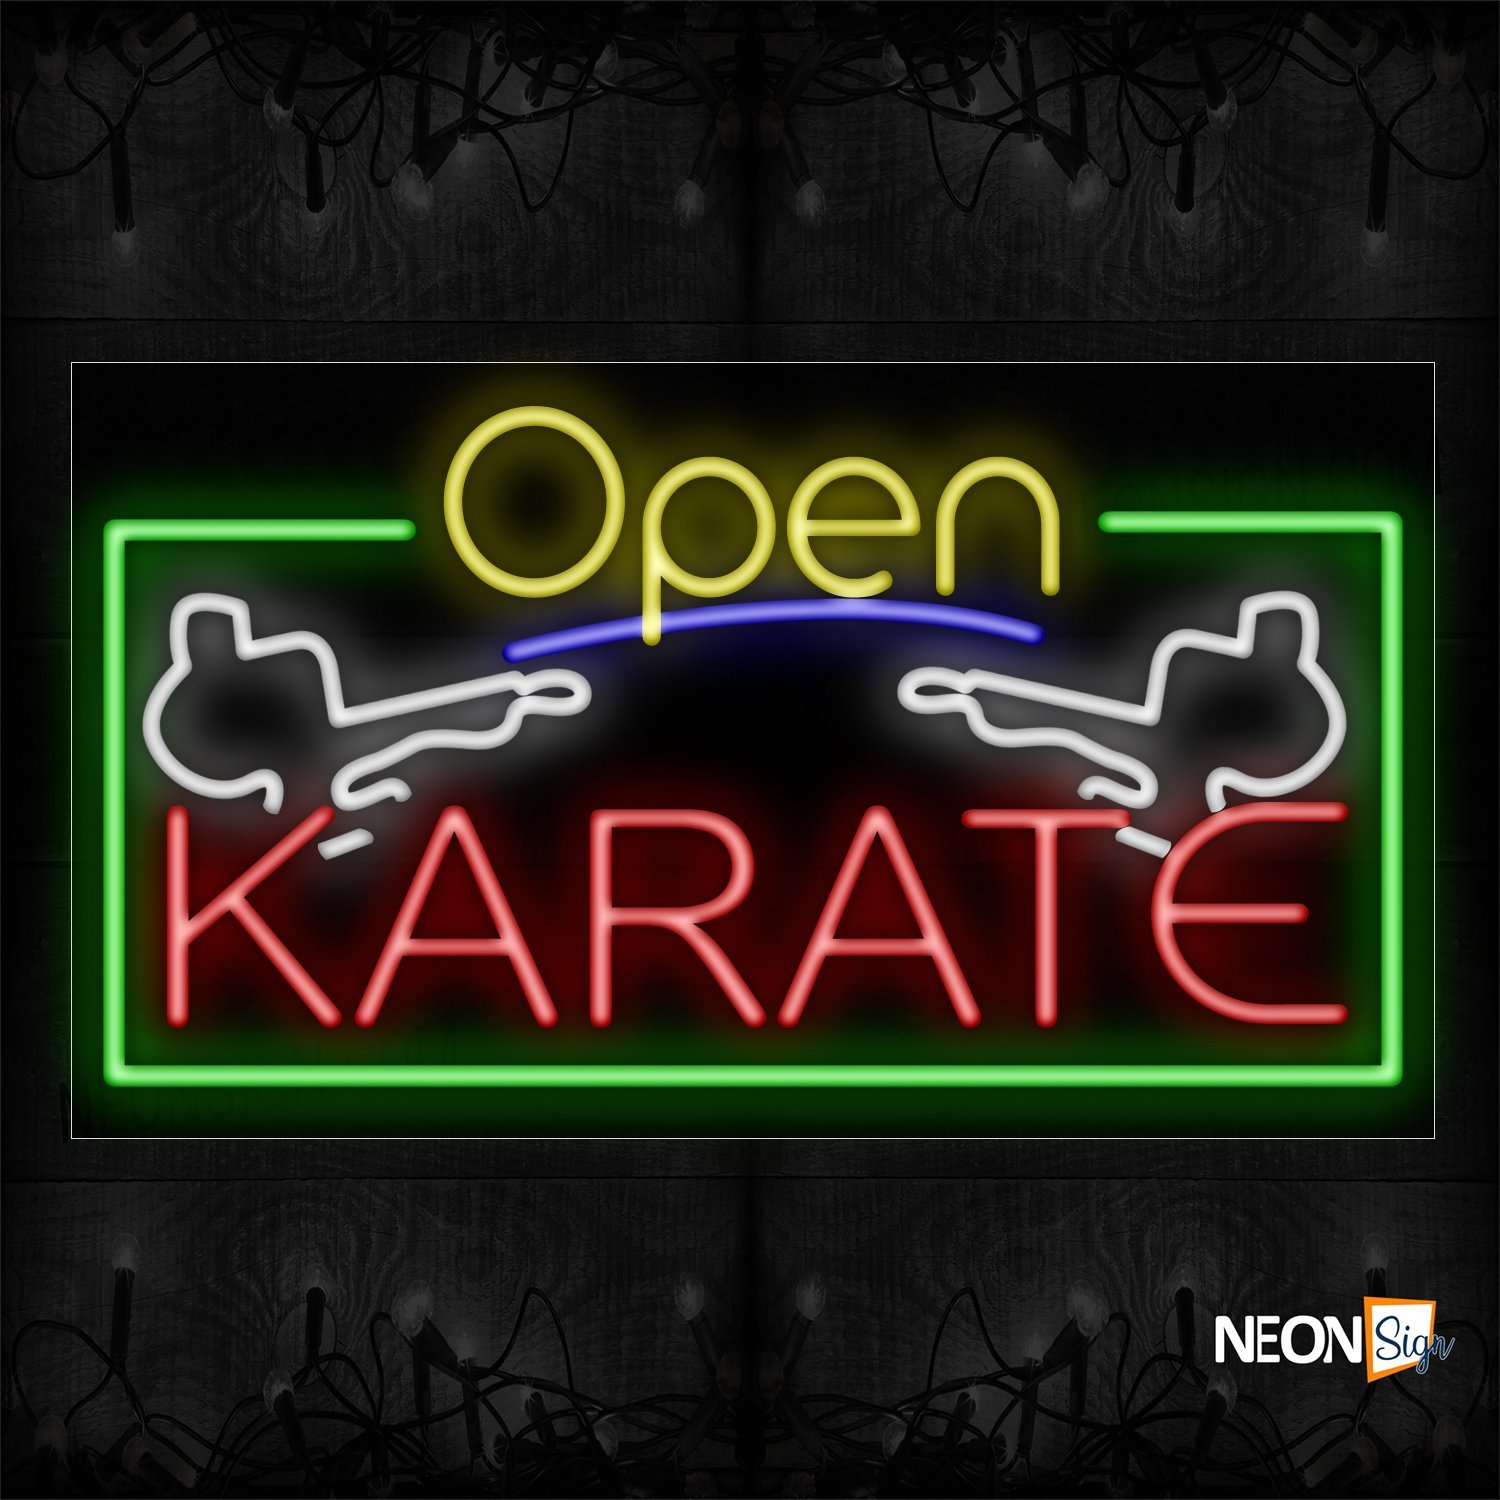 Image of 15527 Open Karate With Green Border With Logo Neon Sign_20x37 Black Backing (1)